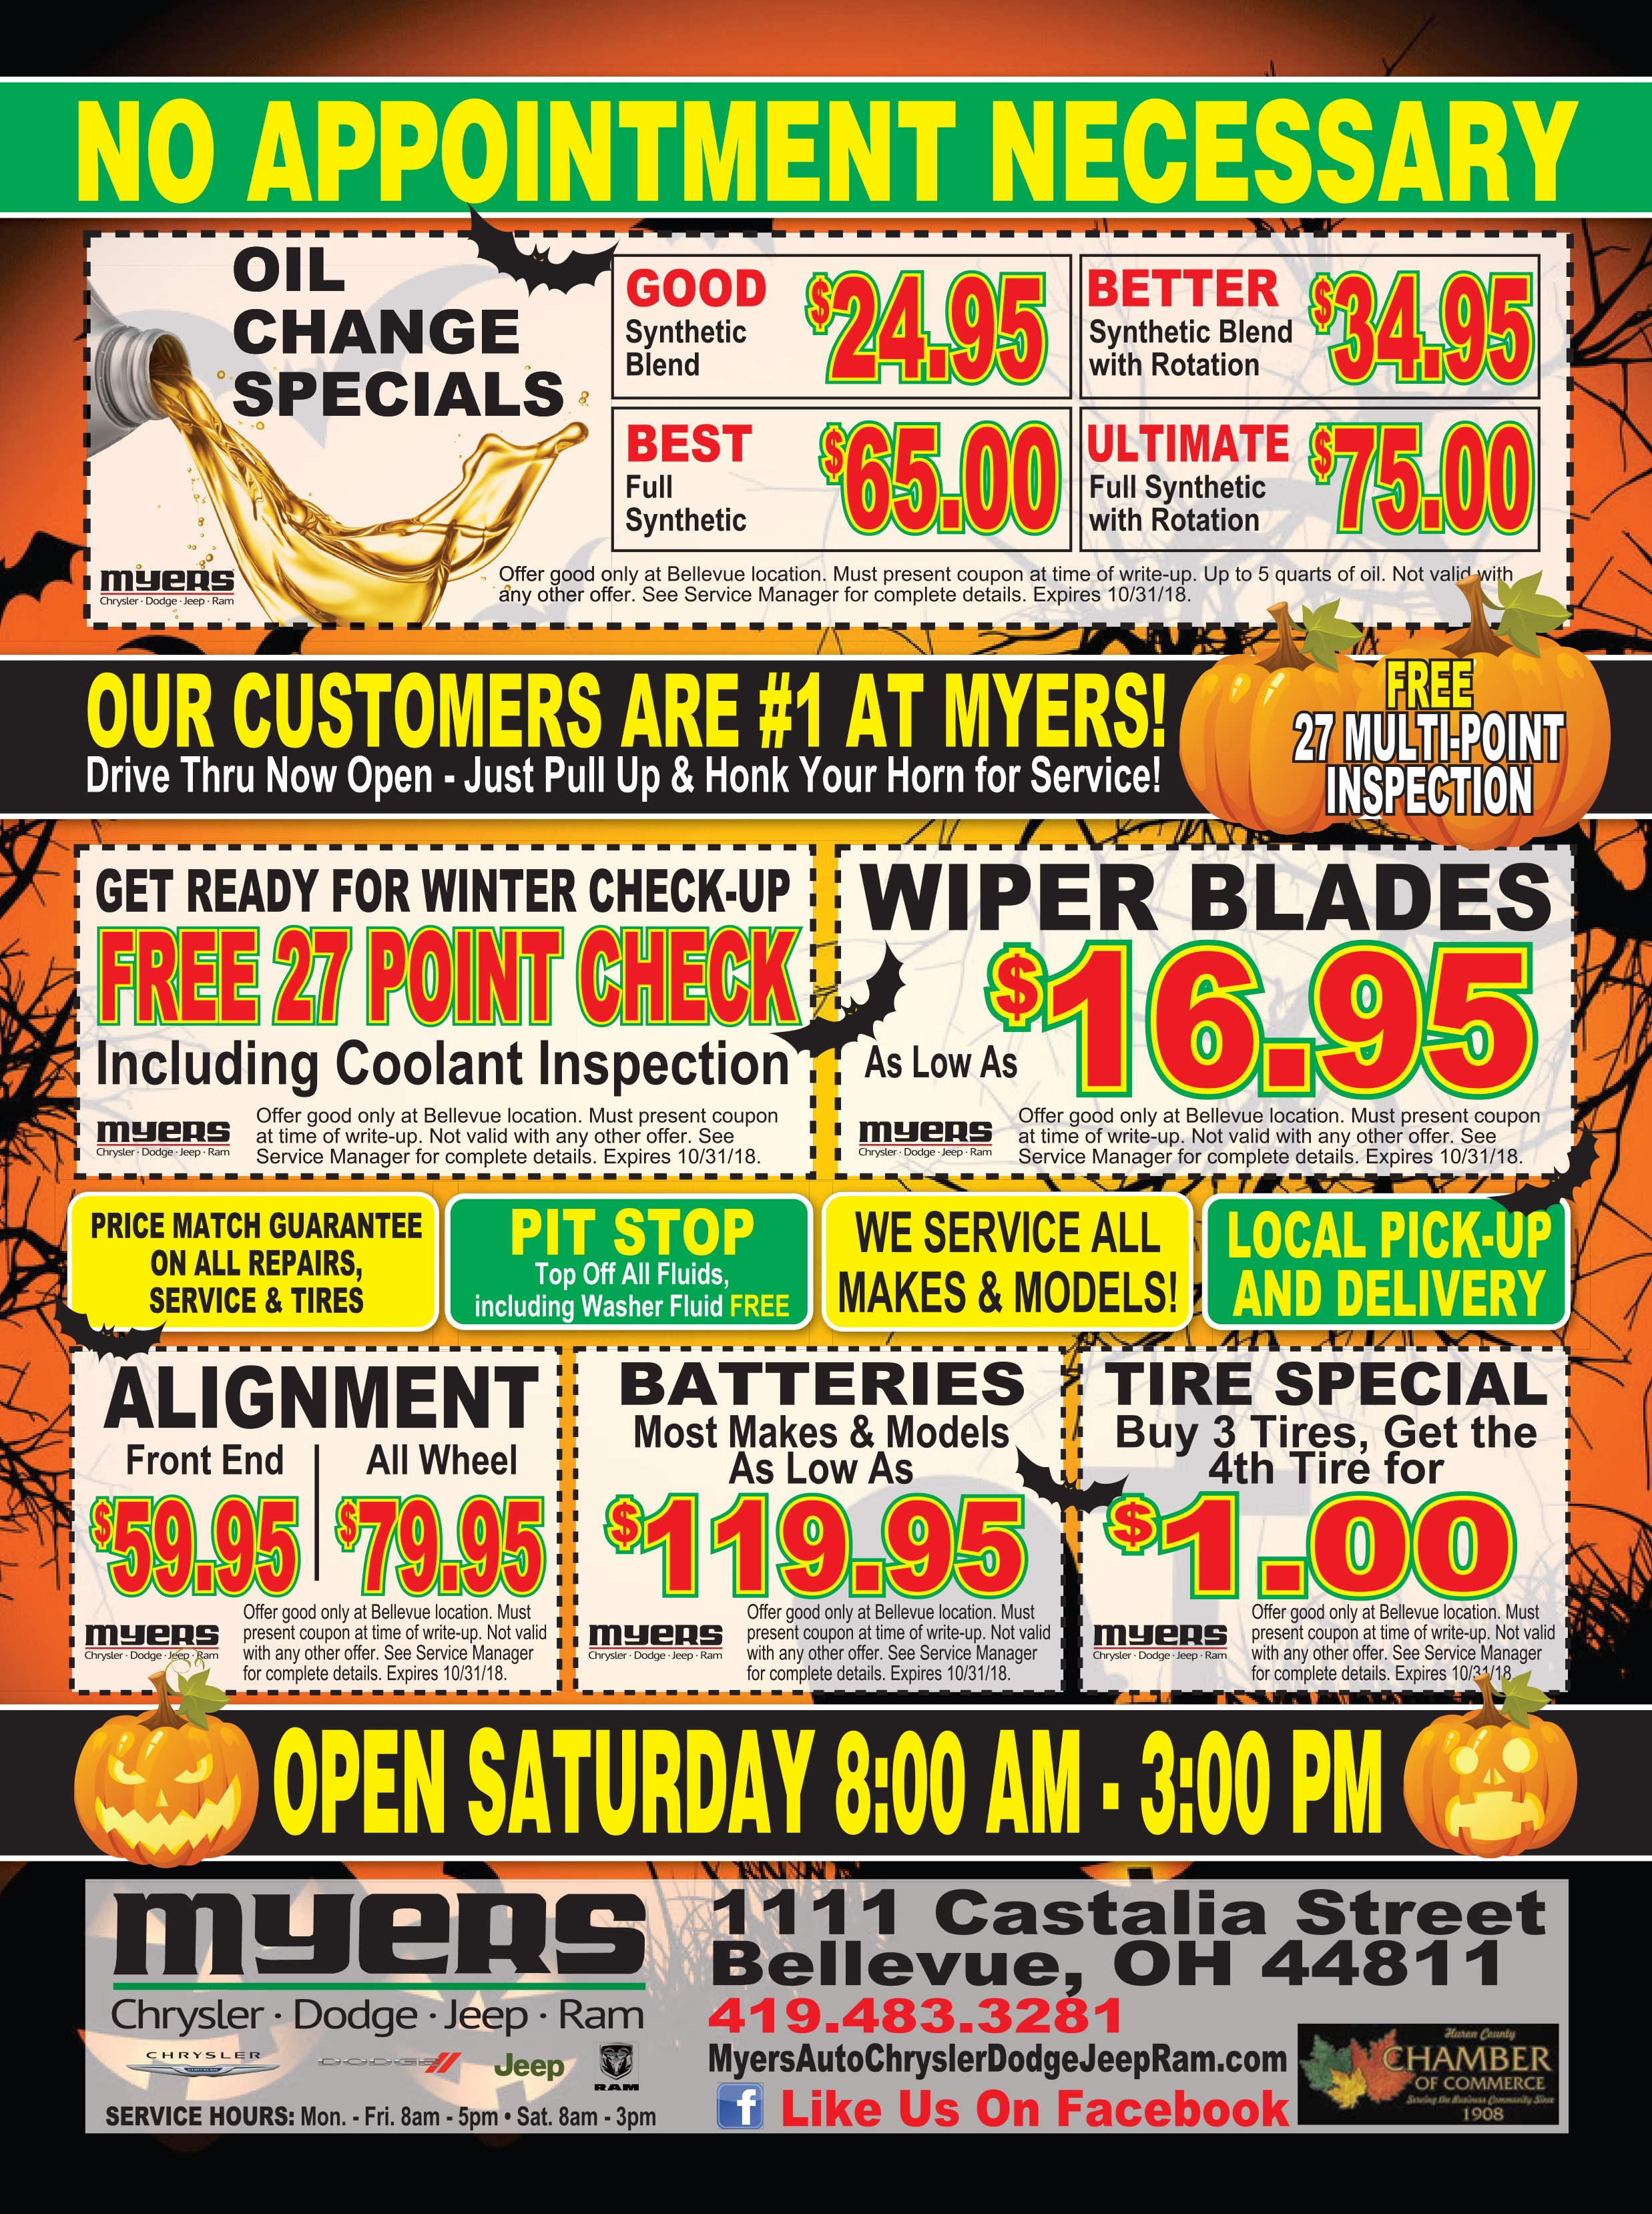 Full Synthetic Oil Change Coupon >> Oil Change Service Special Bellevue OH